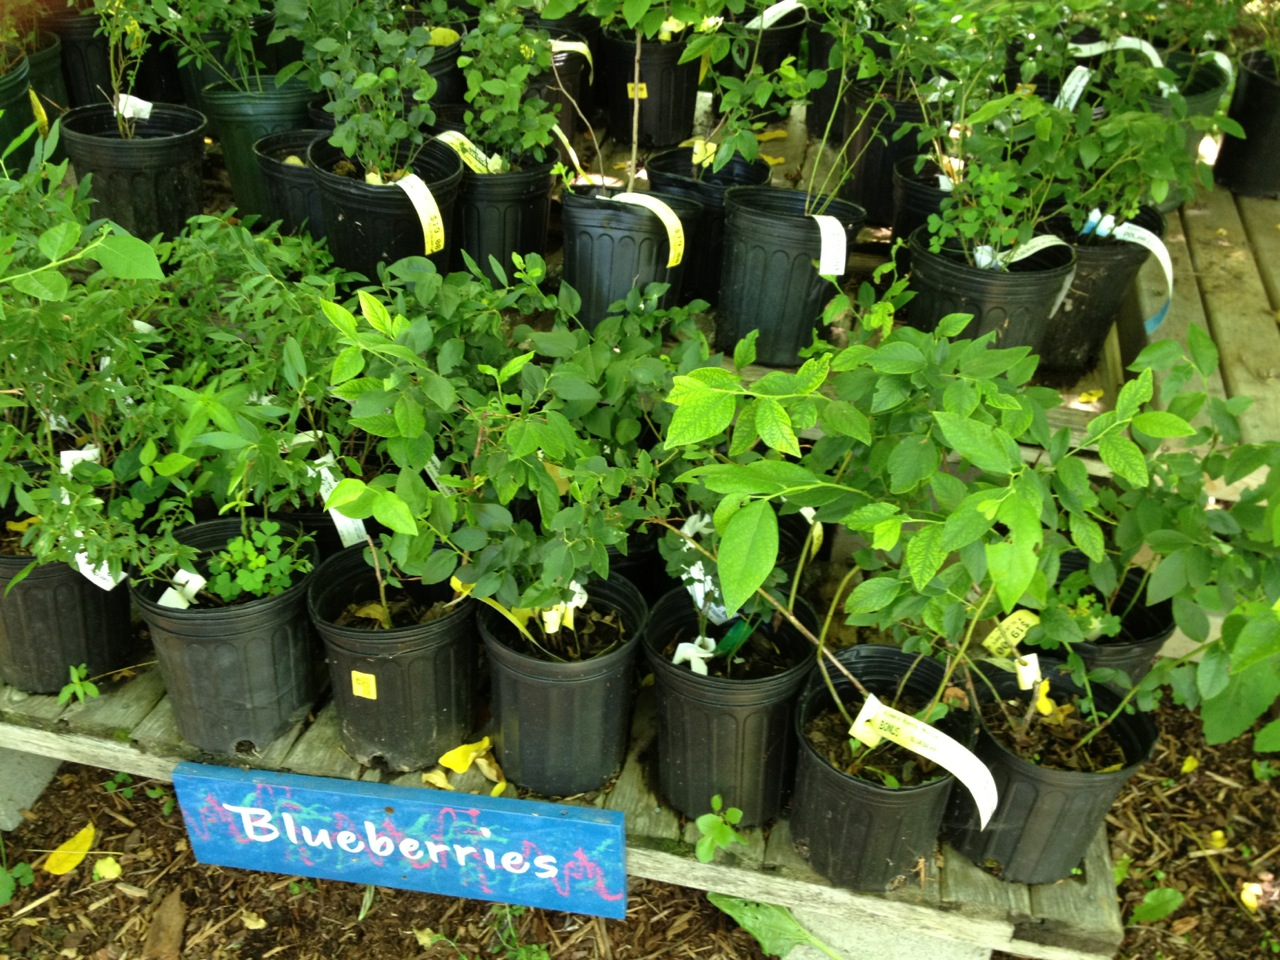 Blueberries at Elmore Roots Nursery